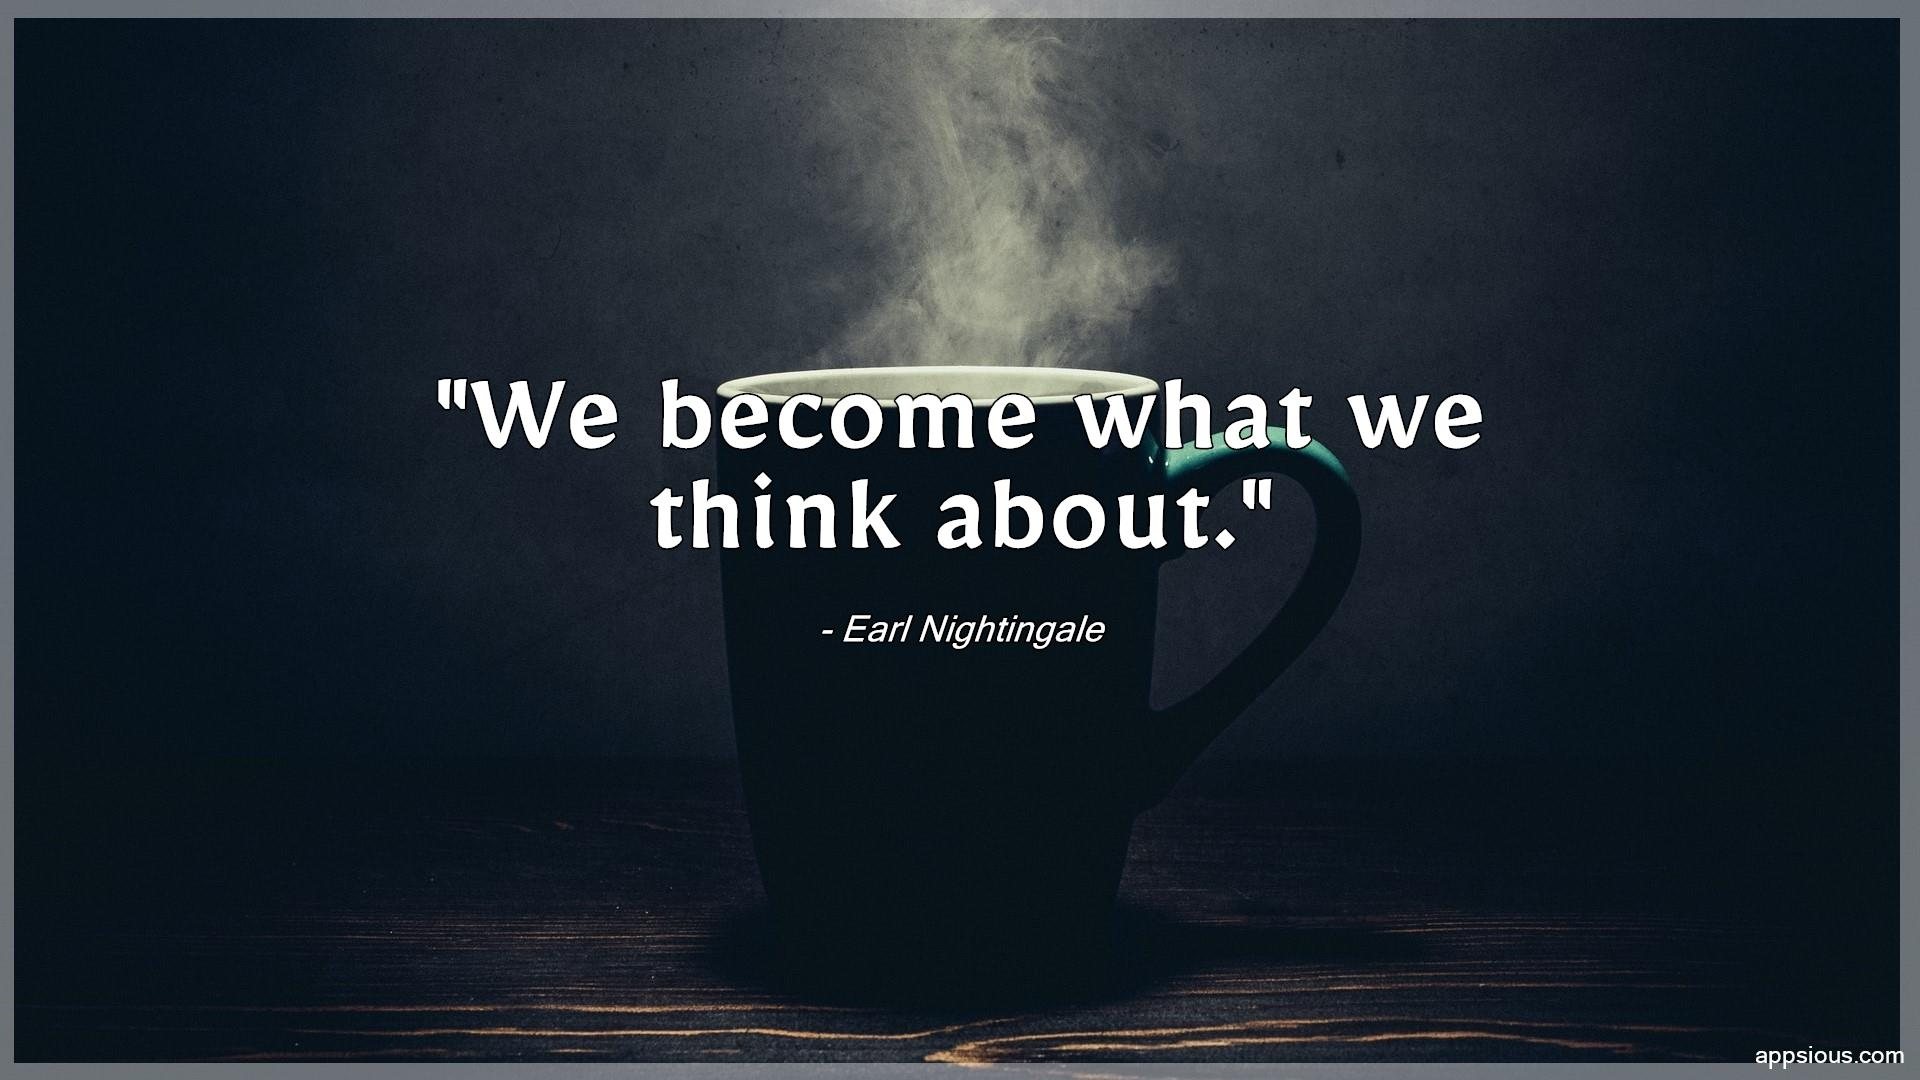 We become what we think about.